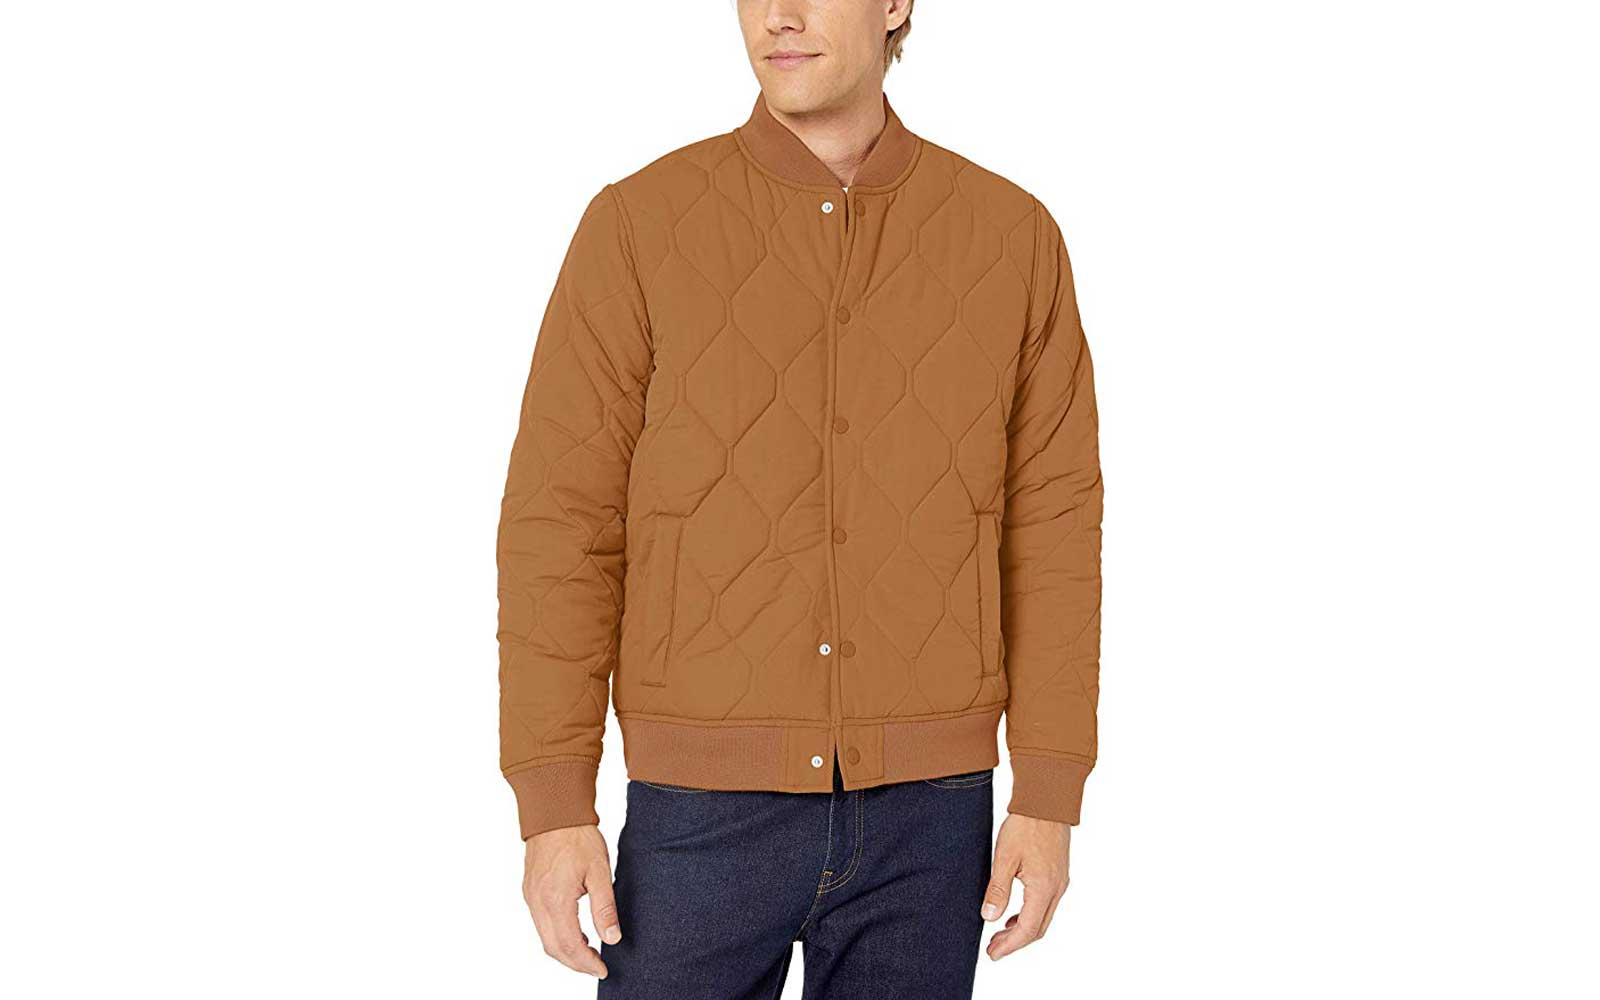 Tan Men's Bomber Jacket